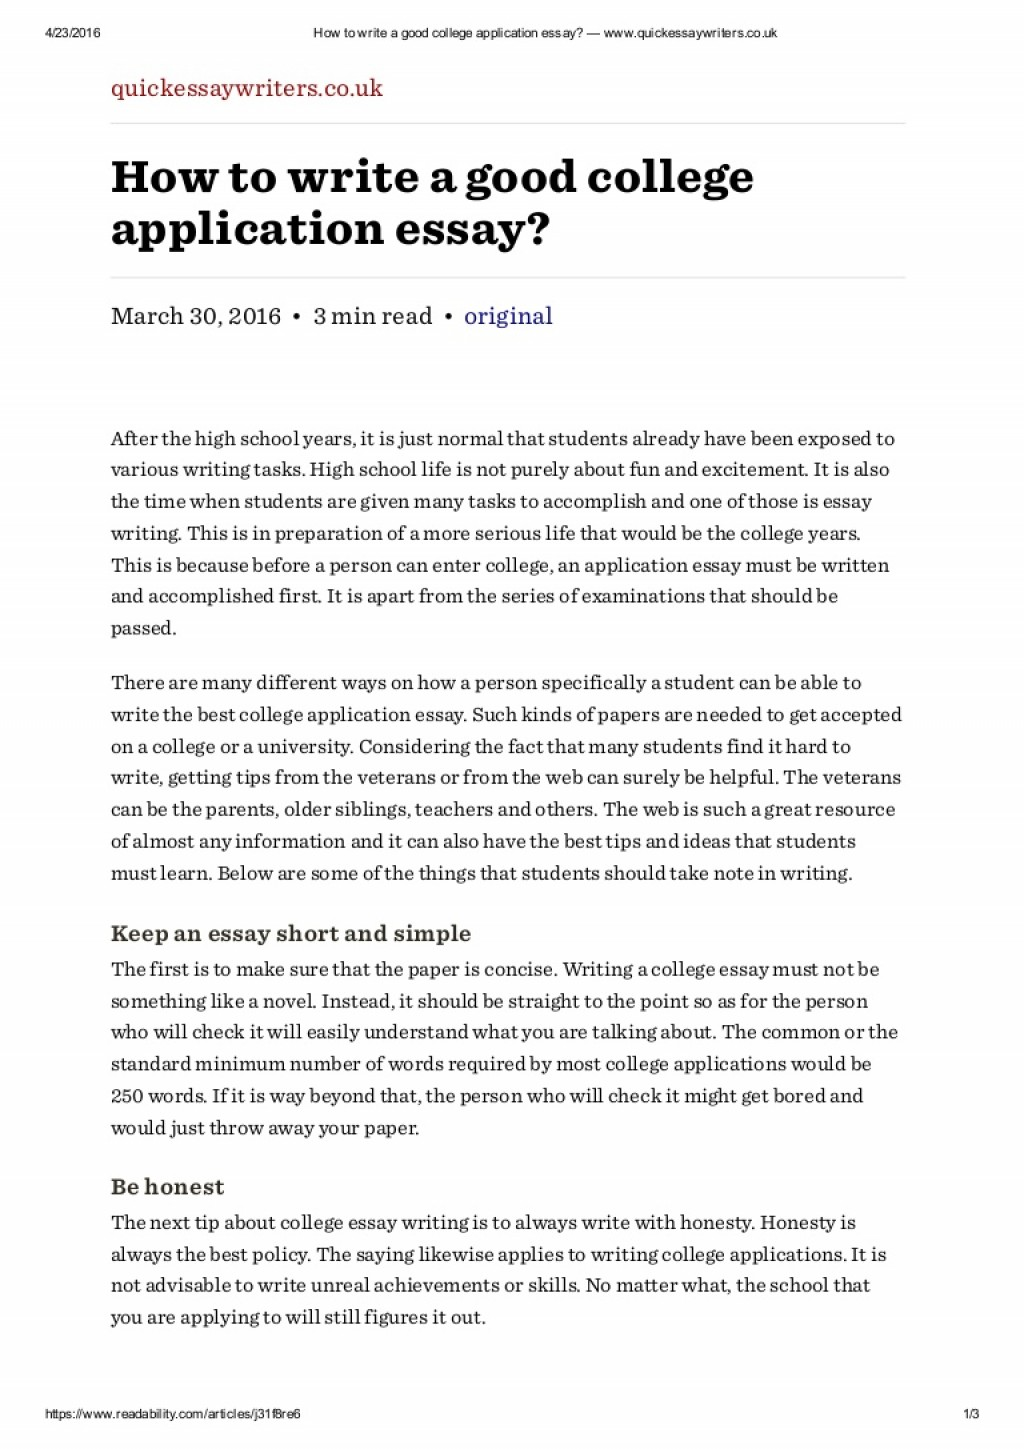 009 Howtowriteagoodcollegeapplicationessaywww Thumbnail Essay Example Writing College Rare A Application How To Write Outline Tips For Entrance Large